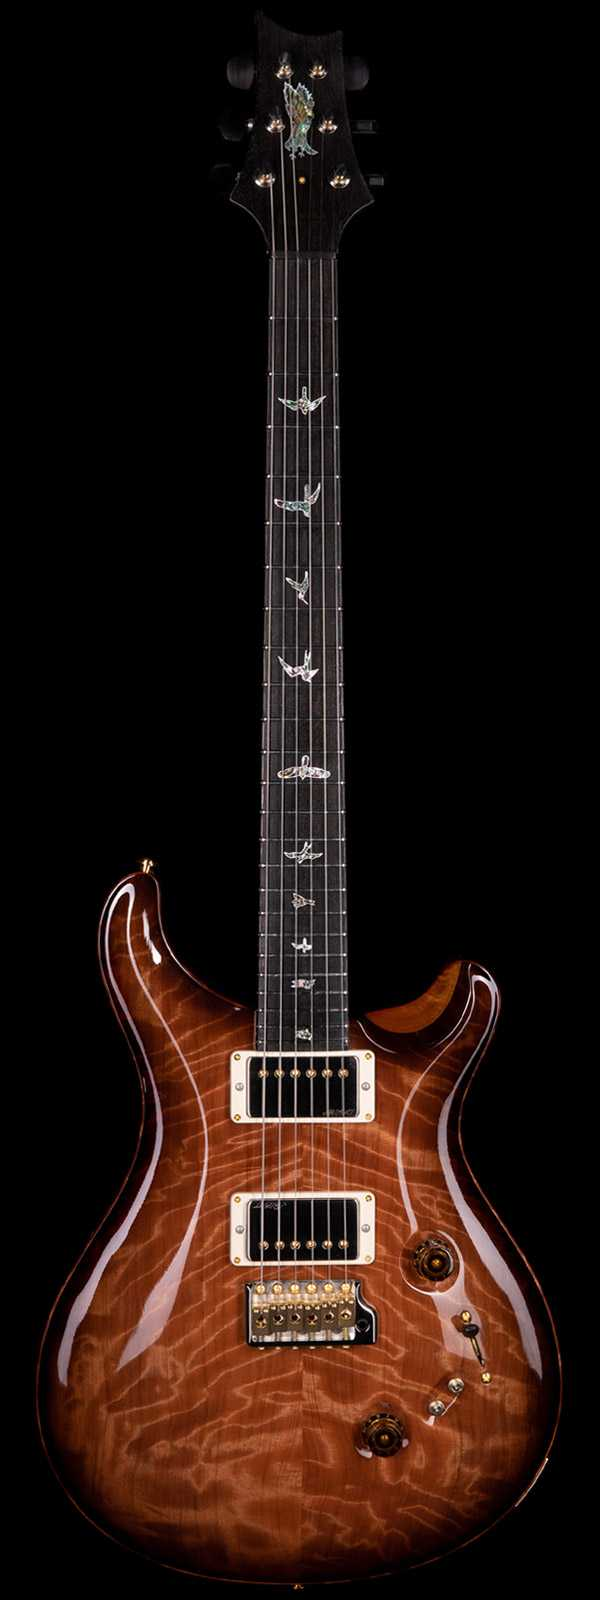 PRS Private Stock 8512 Custom 24-08 Roasted Quilt Maple Top